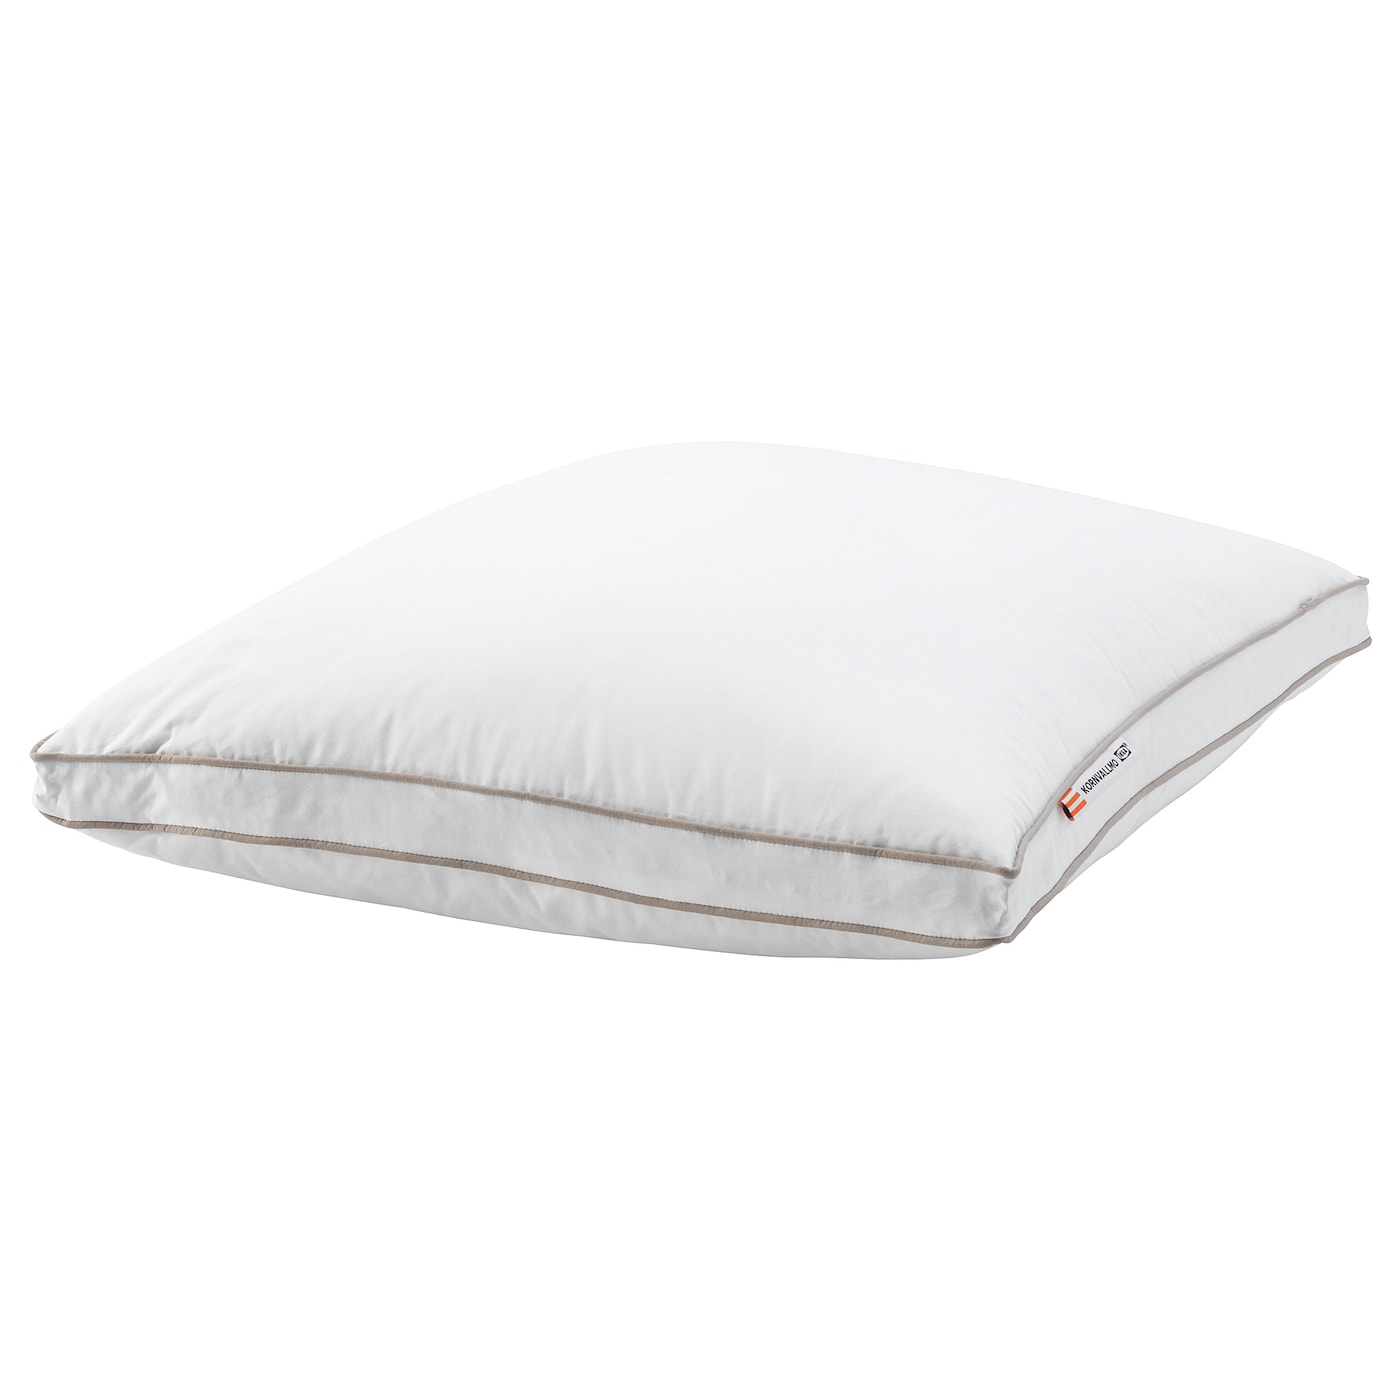 IKEA KORNVALLMO pillow, firmer A firm pillow in cotton sateen, filled with duck down and feathers.